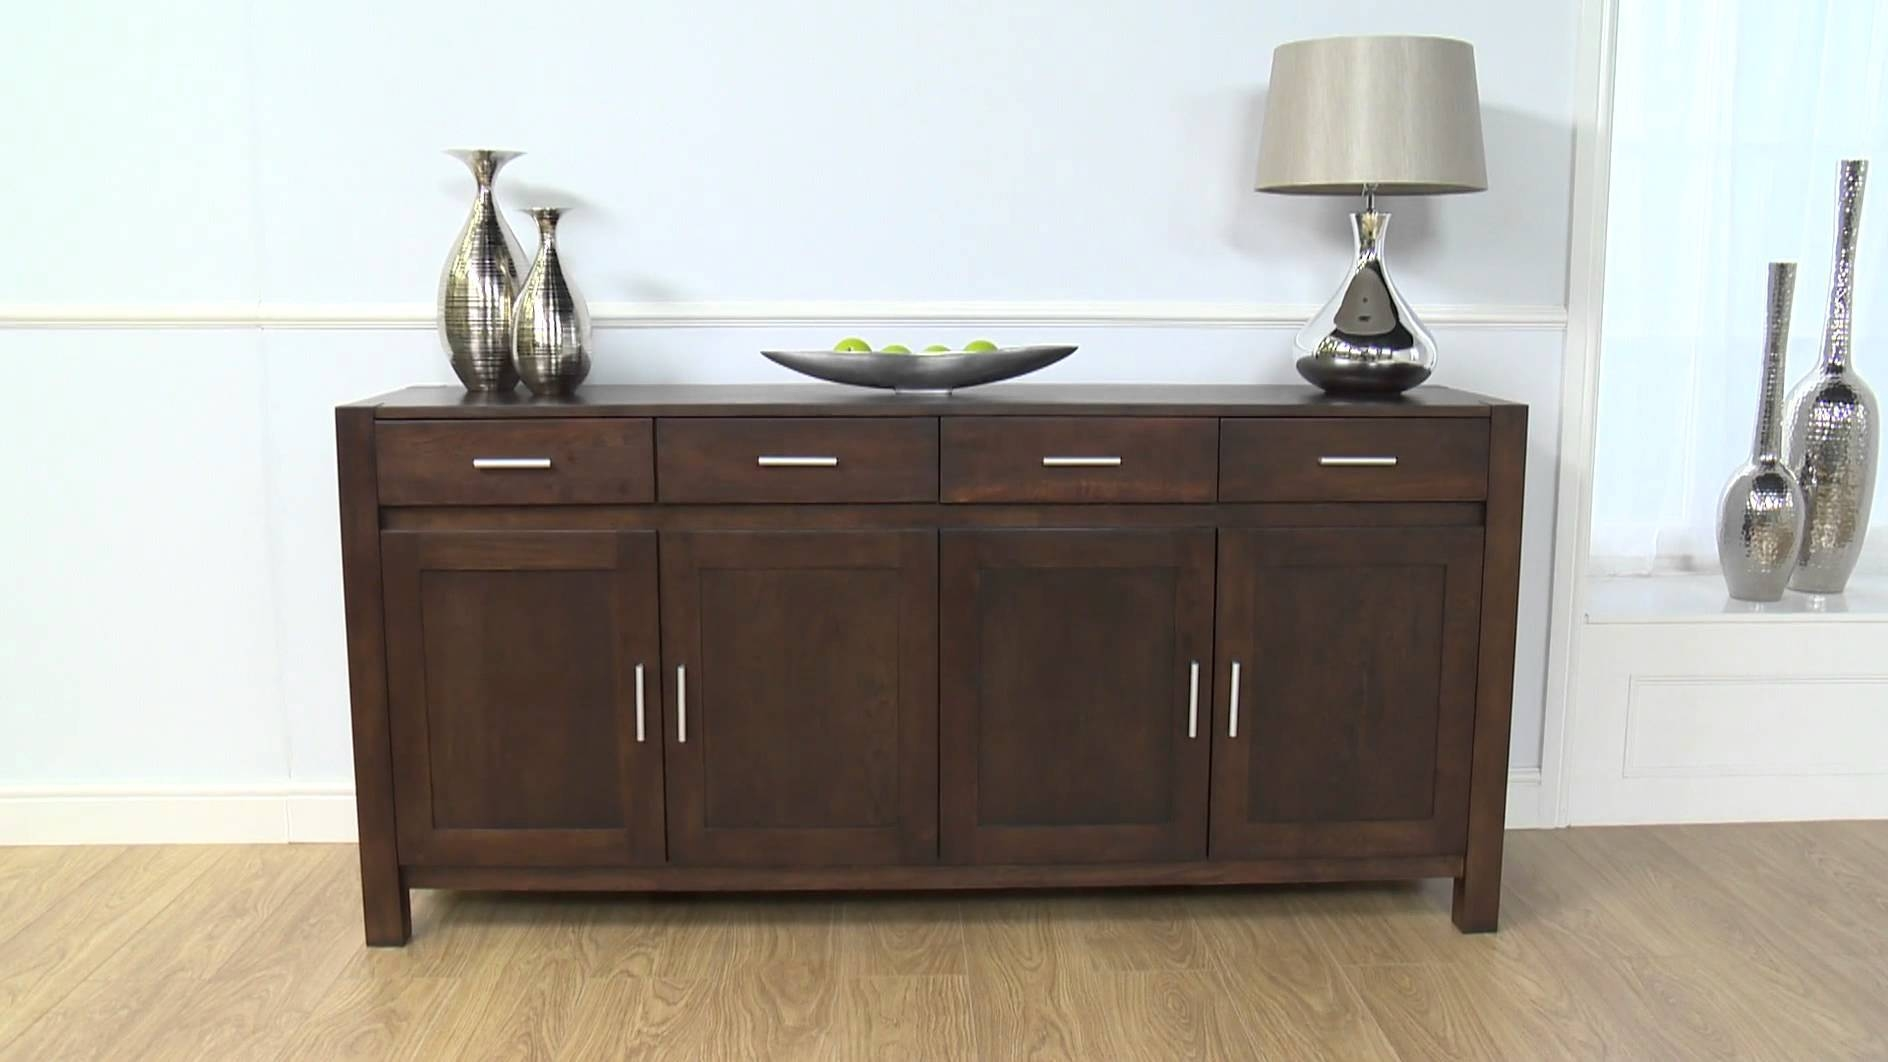 Dark Wood Sideboard: Verona Dark Oak Sideboard Xl – Youtube Intended For Small Dark Wood Sideboard (#6 of 20)